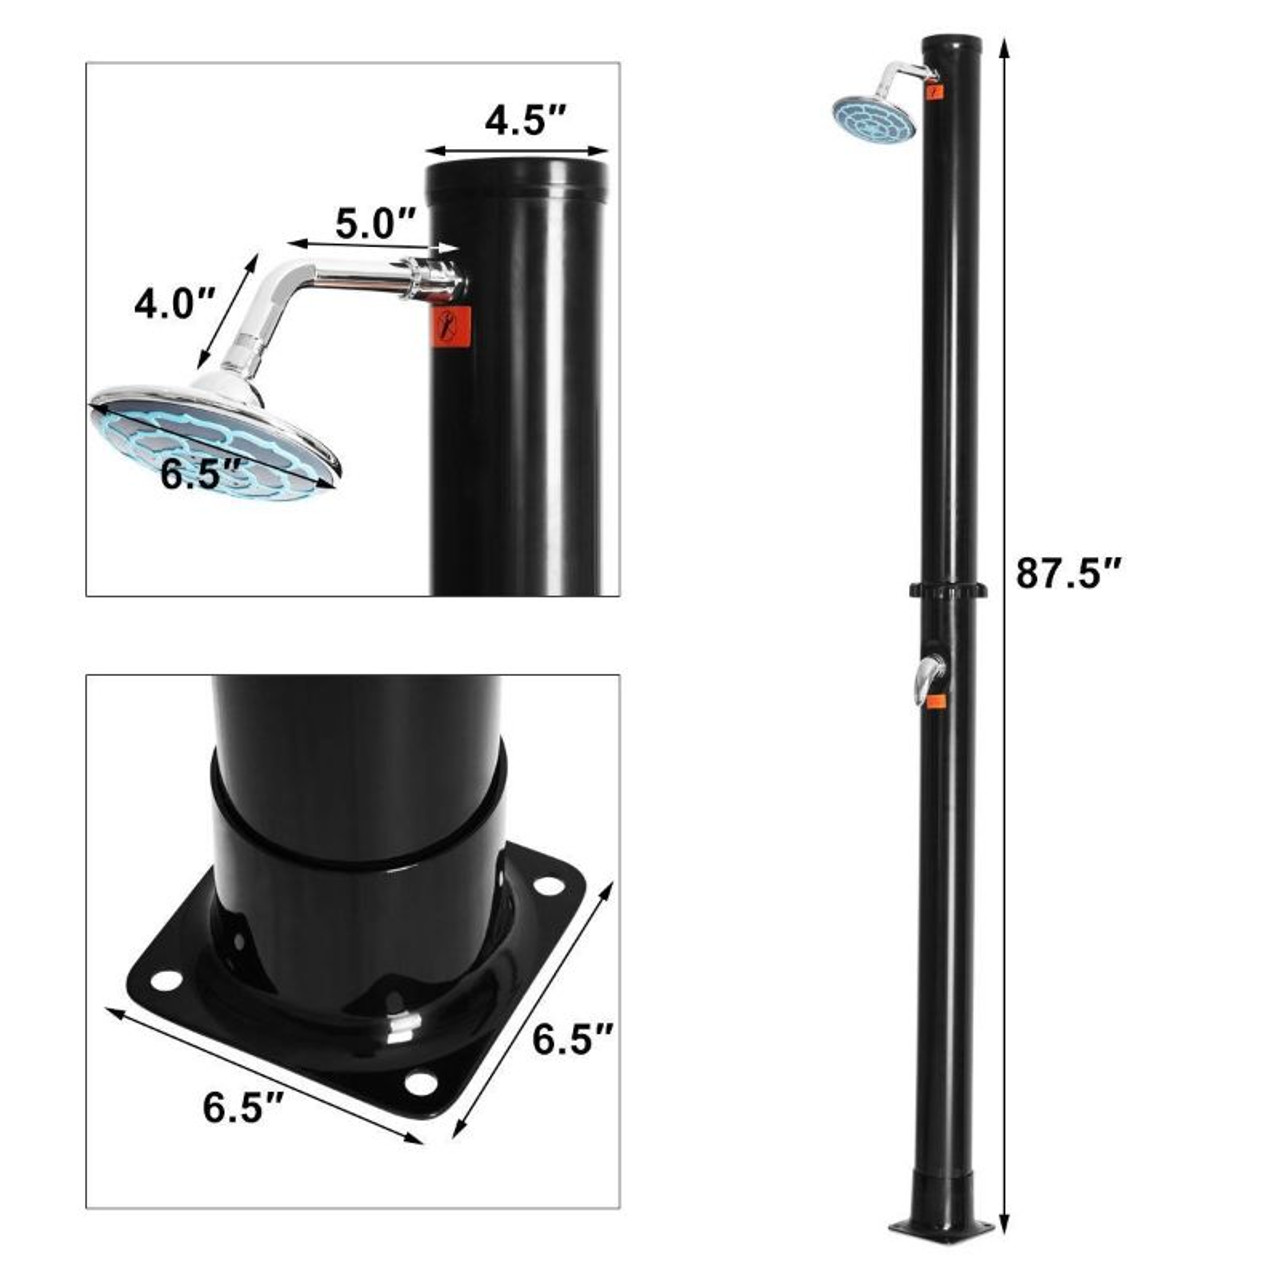 7.2 Foot Solar Heated Hot and Cold Shower Spa with Base - 5.5 Gallon